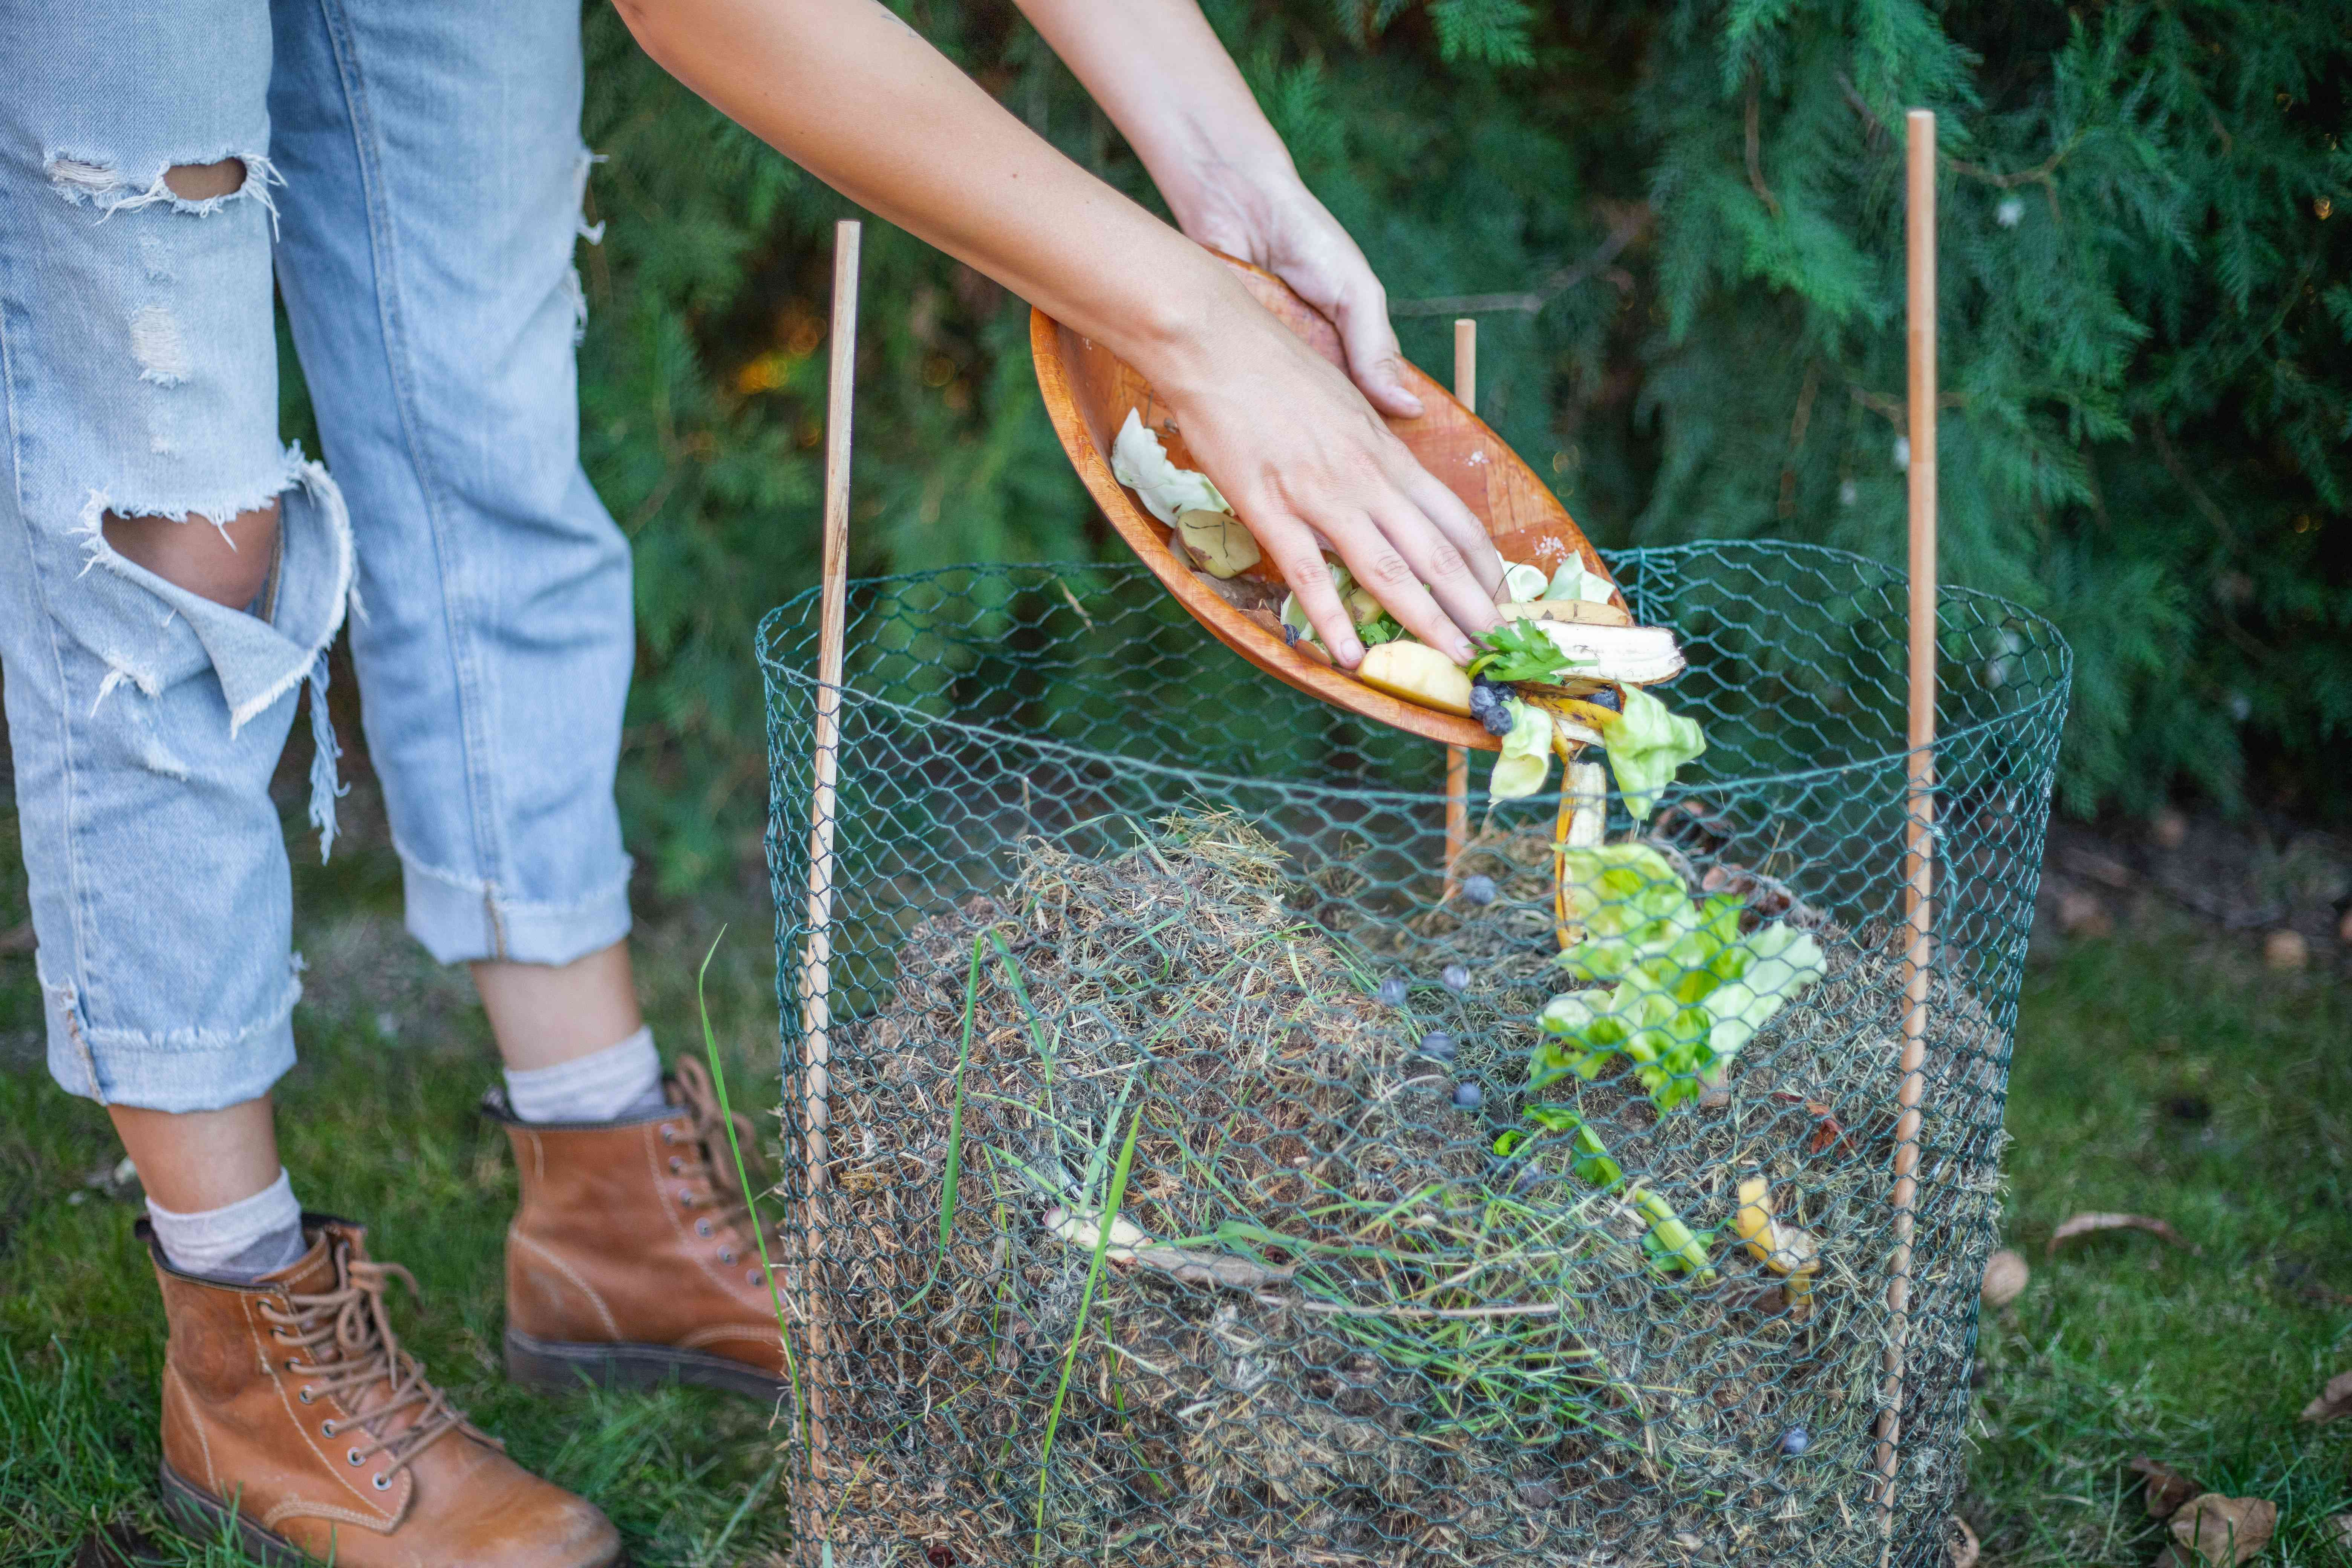 woman in torn jeans tosses old food scraps into cold compost system outside